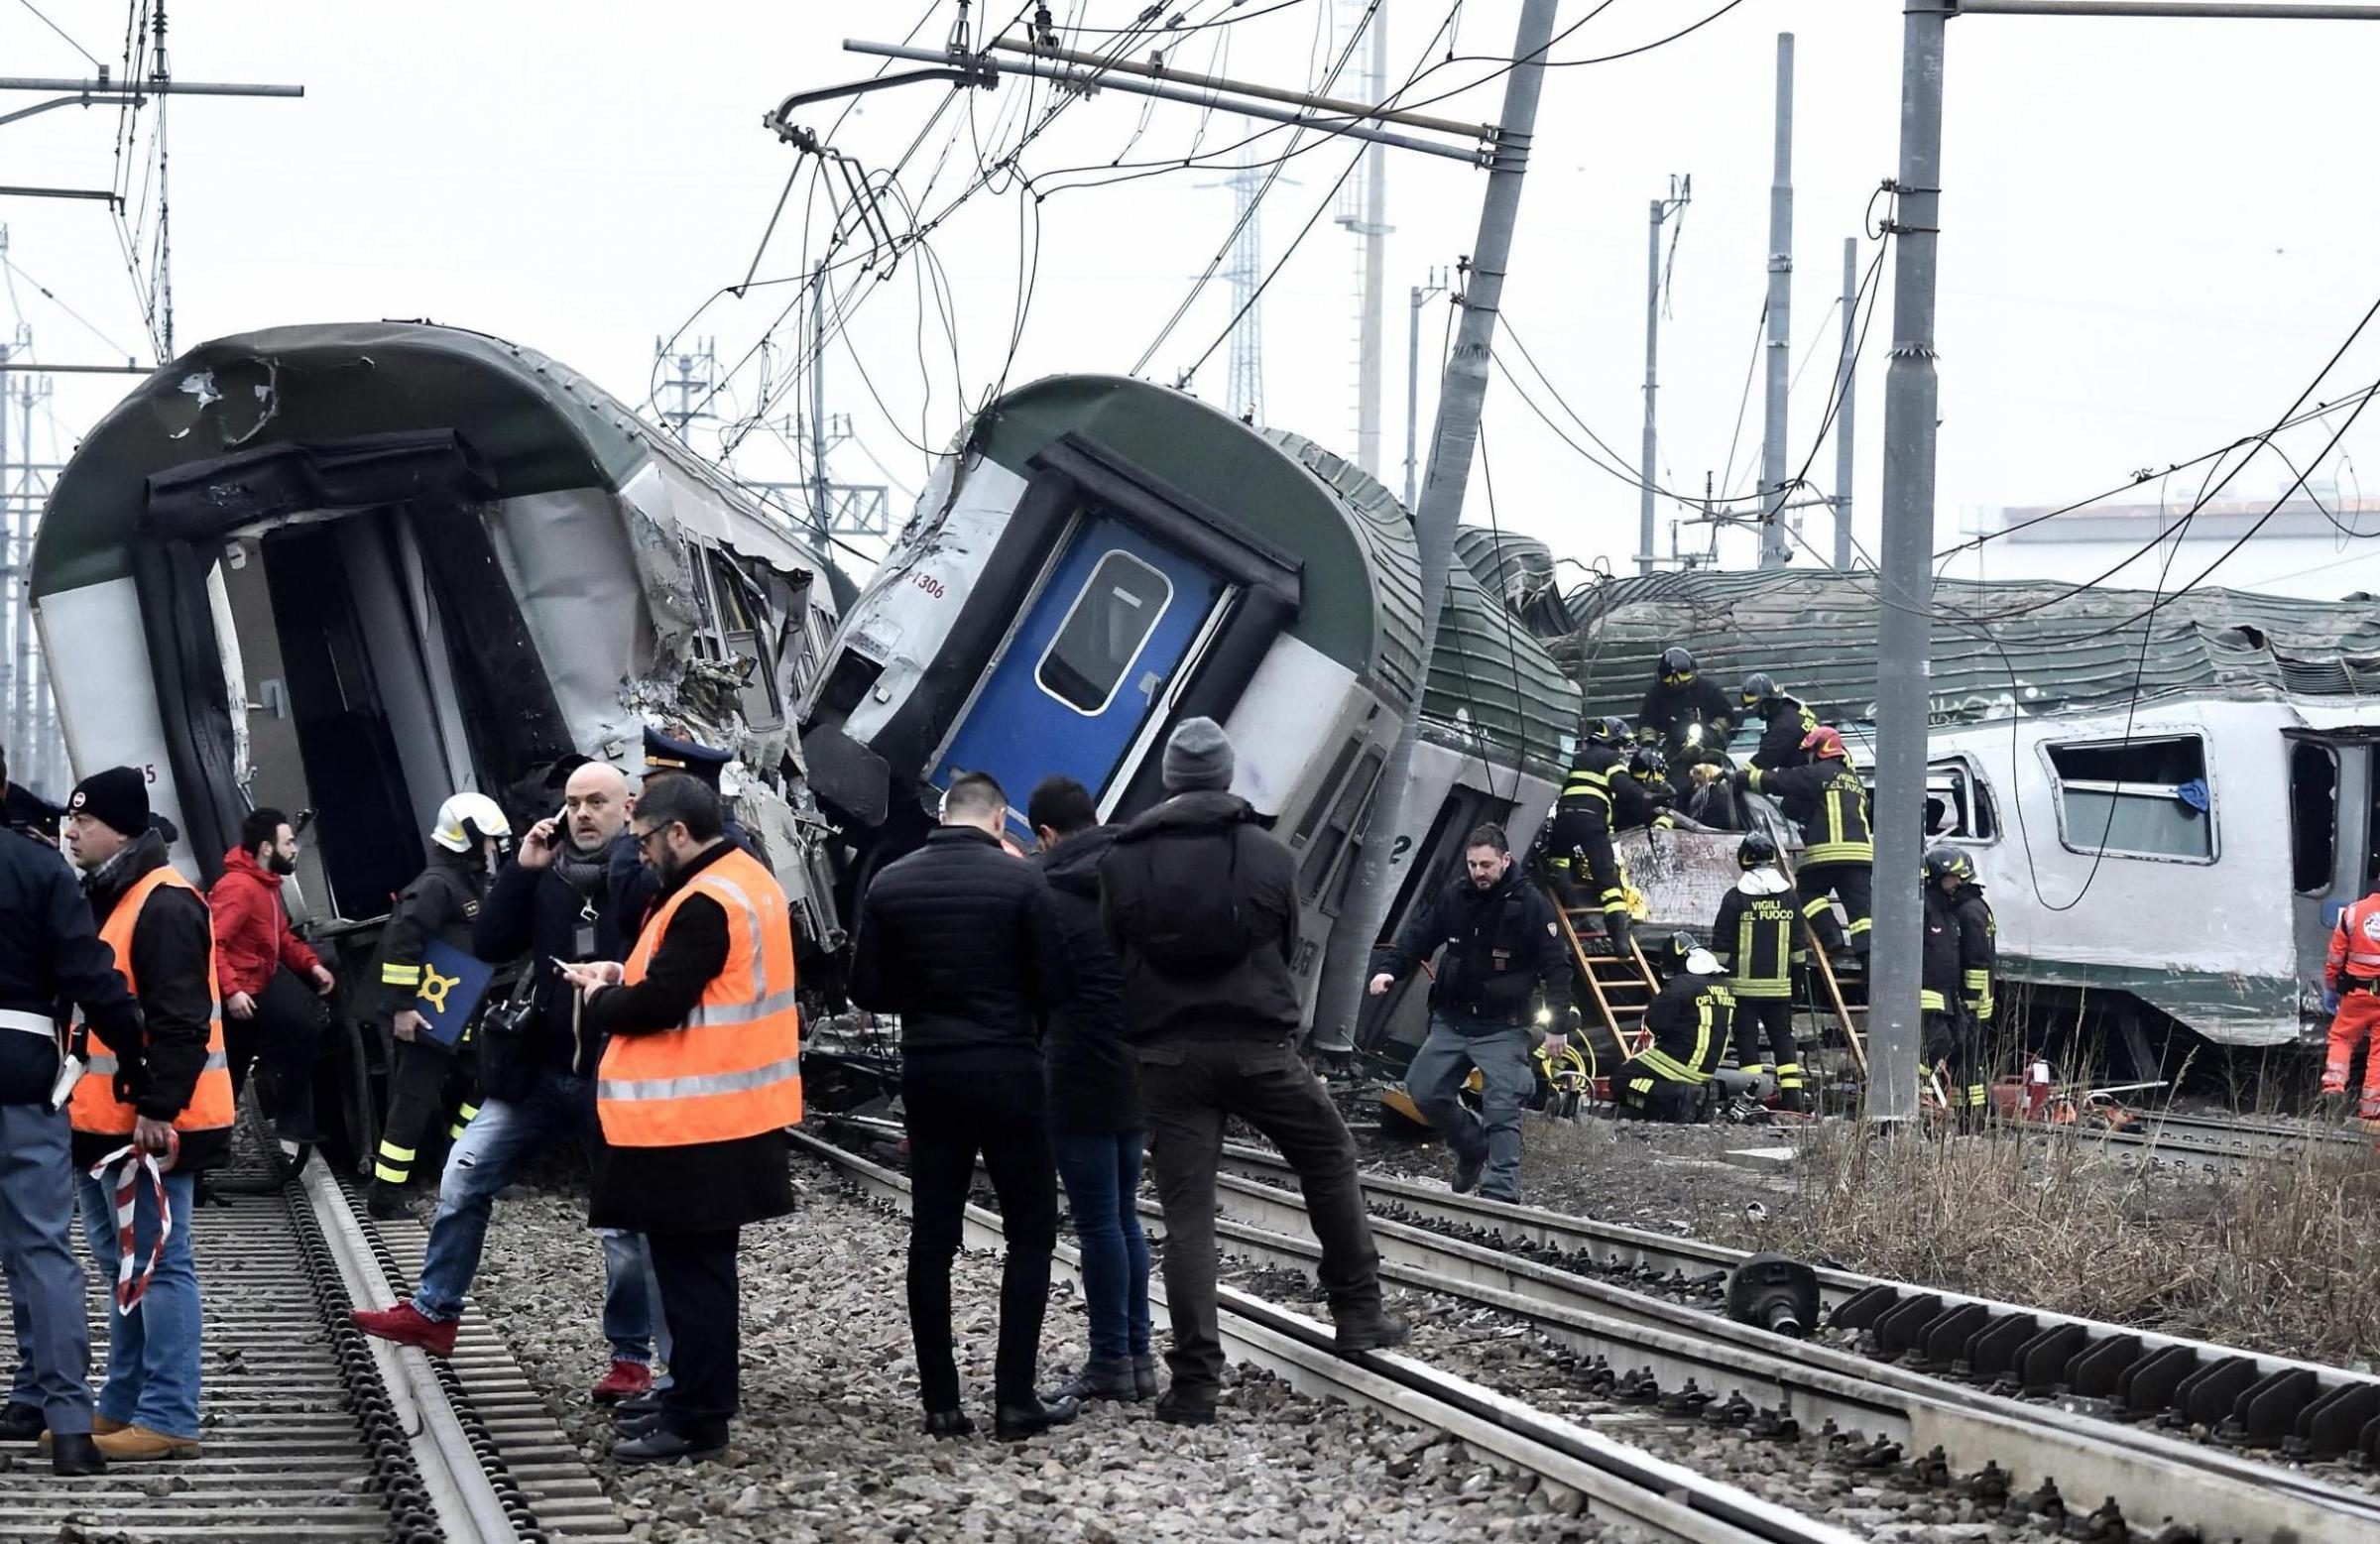 Rescue teams help passenger out of a derailed train at the station of Pioltello Limito, on the outskirts of Milan, Italy, Thursday, Jan. 25, 2018